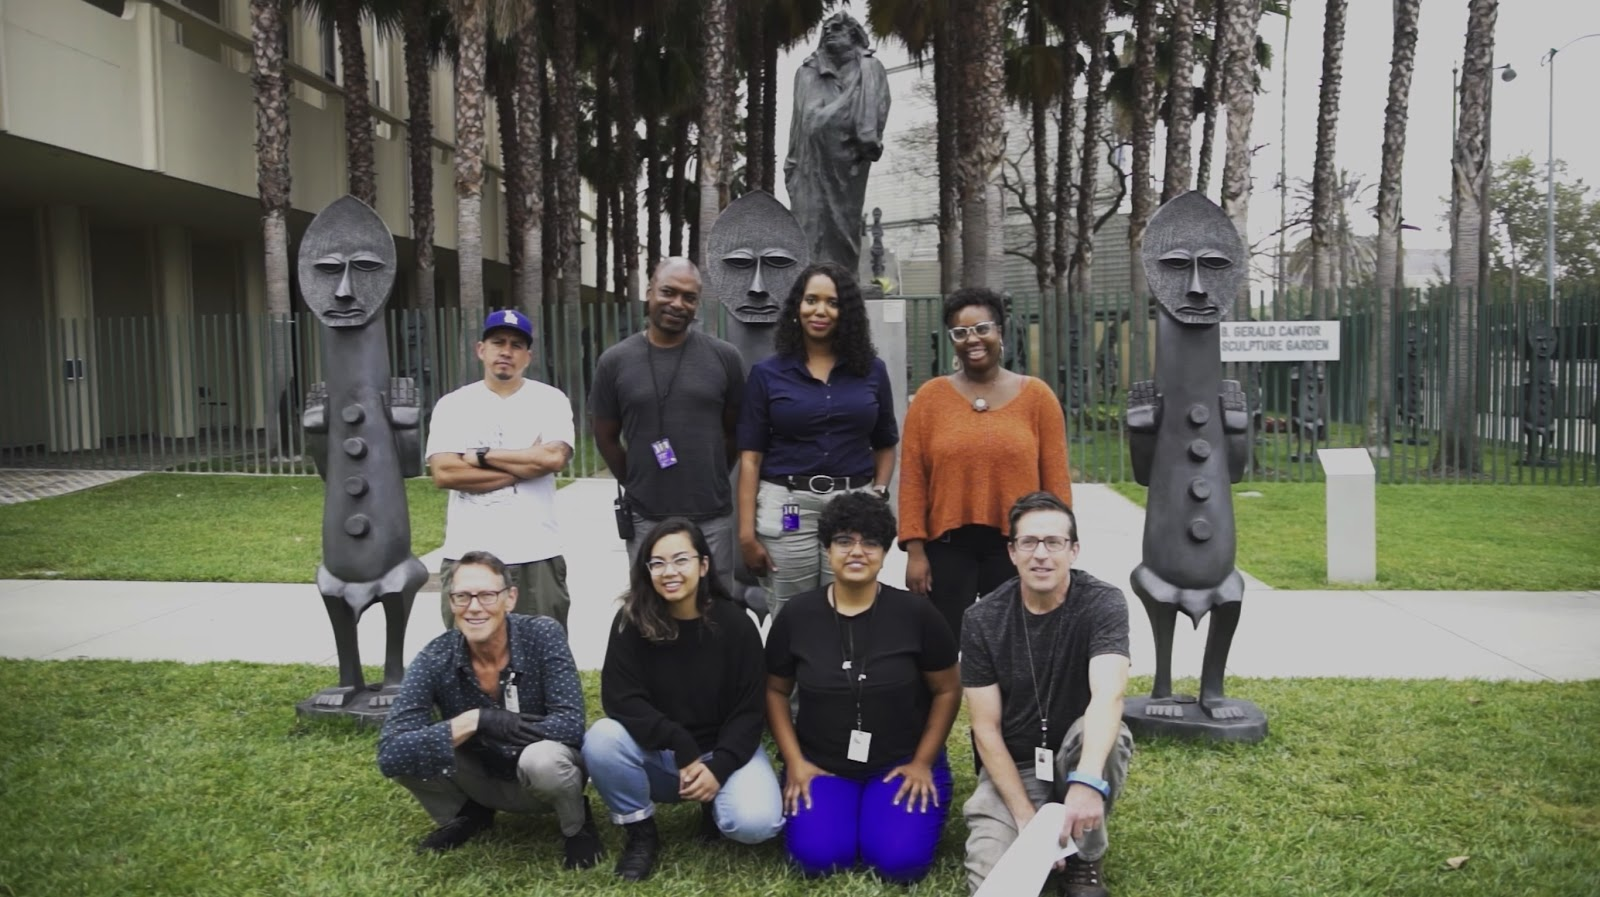 "Top row, left to right: Senior Art Preparator Shorty, Senior Art Preparator Michael Price, Assistant Registrar Dawn Turner, Art Preparator I Kadejah ""Dejah"" Spraggs; Bottom row, left to right: Art Preparator II David Foster, Art Preparator I (then DAP Apprentice) Jasmine Tibayan, former curatorial assistant Jennifer Cernada, and Senior Art Preparator Thomas Duffy. Installation of the Zak Ové 2019 installation The Invisible Man and the Masque of Blackness, art © Zak Ové, photo by Senior Art Preparator Giorgio Carlevaro"